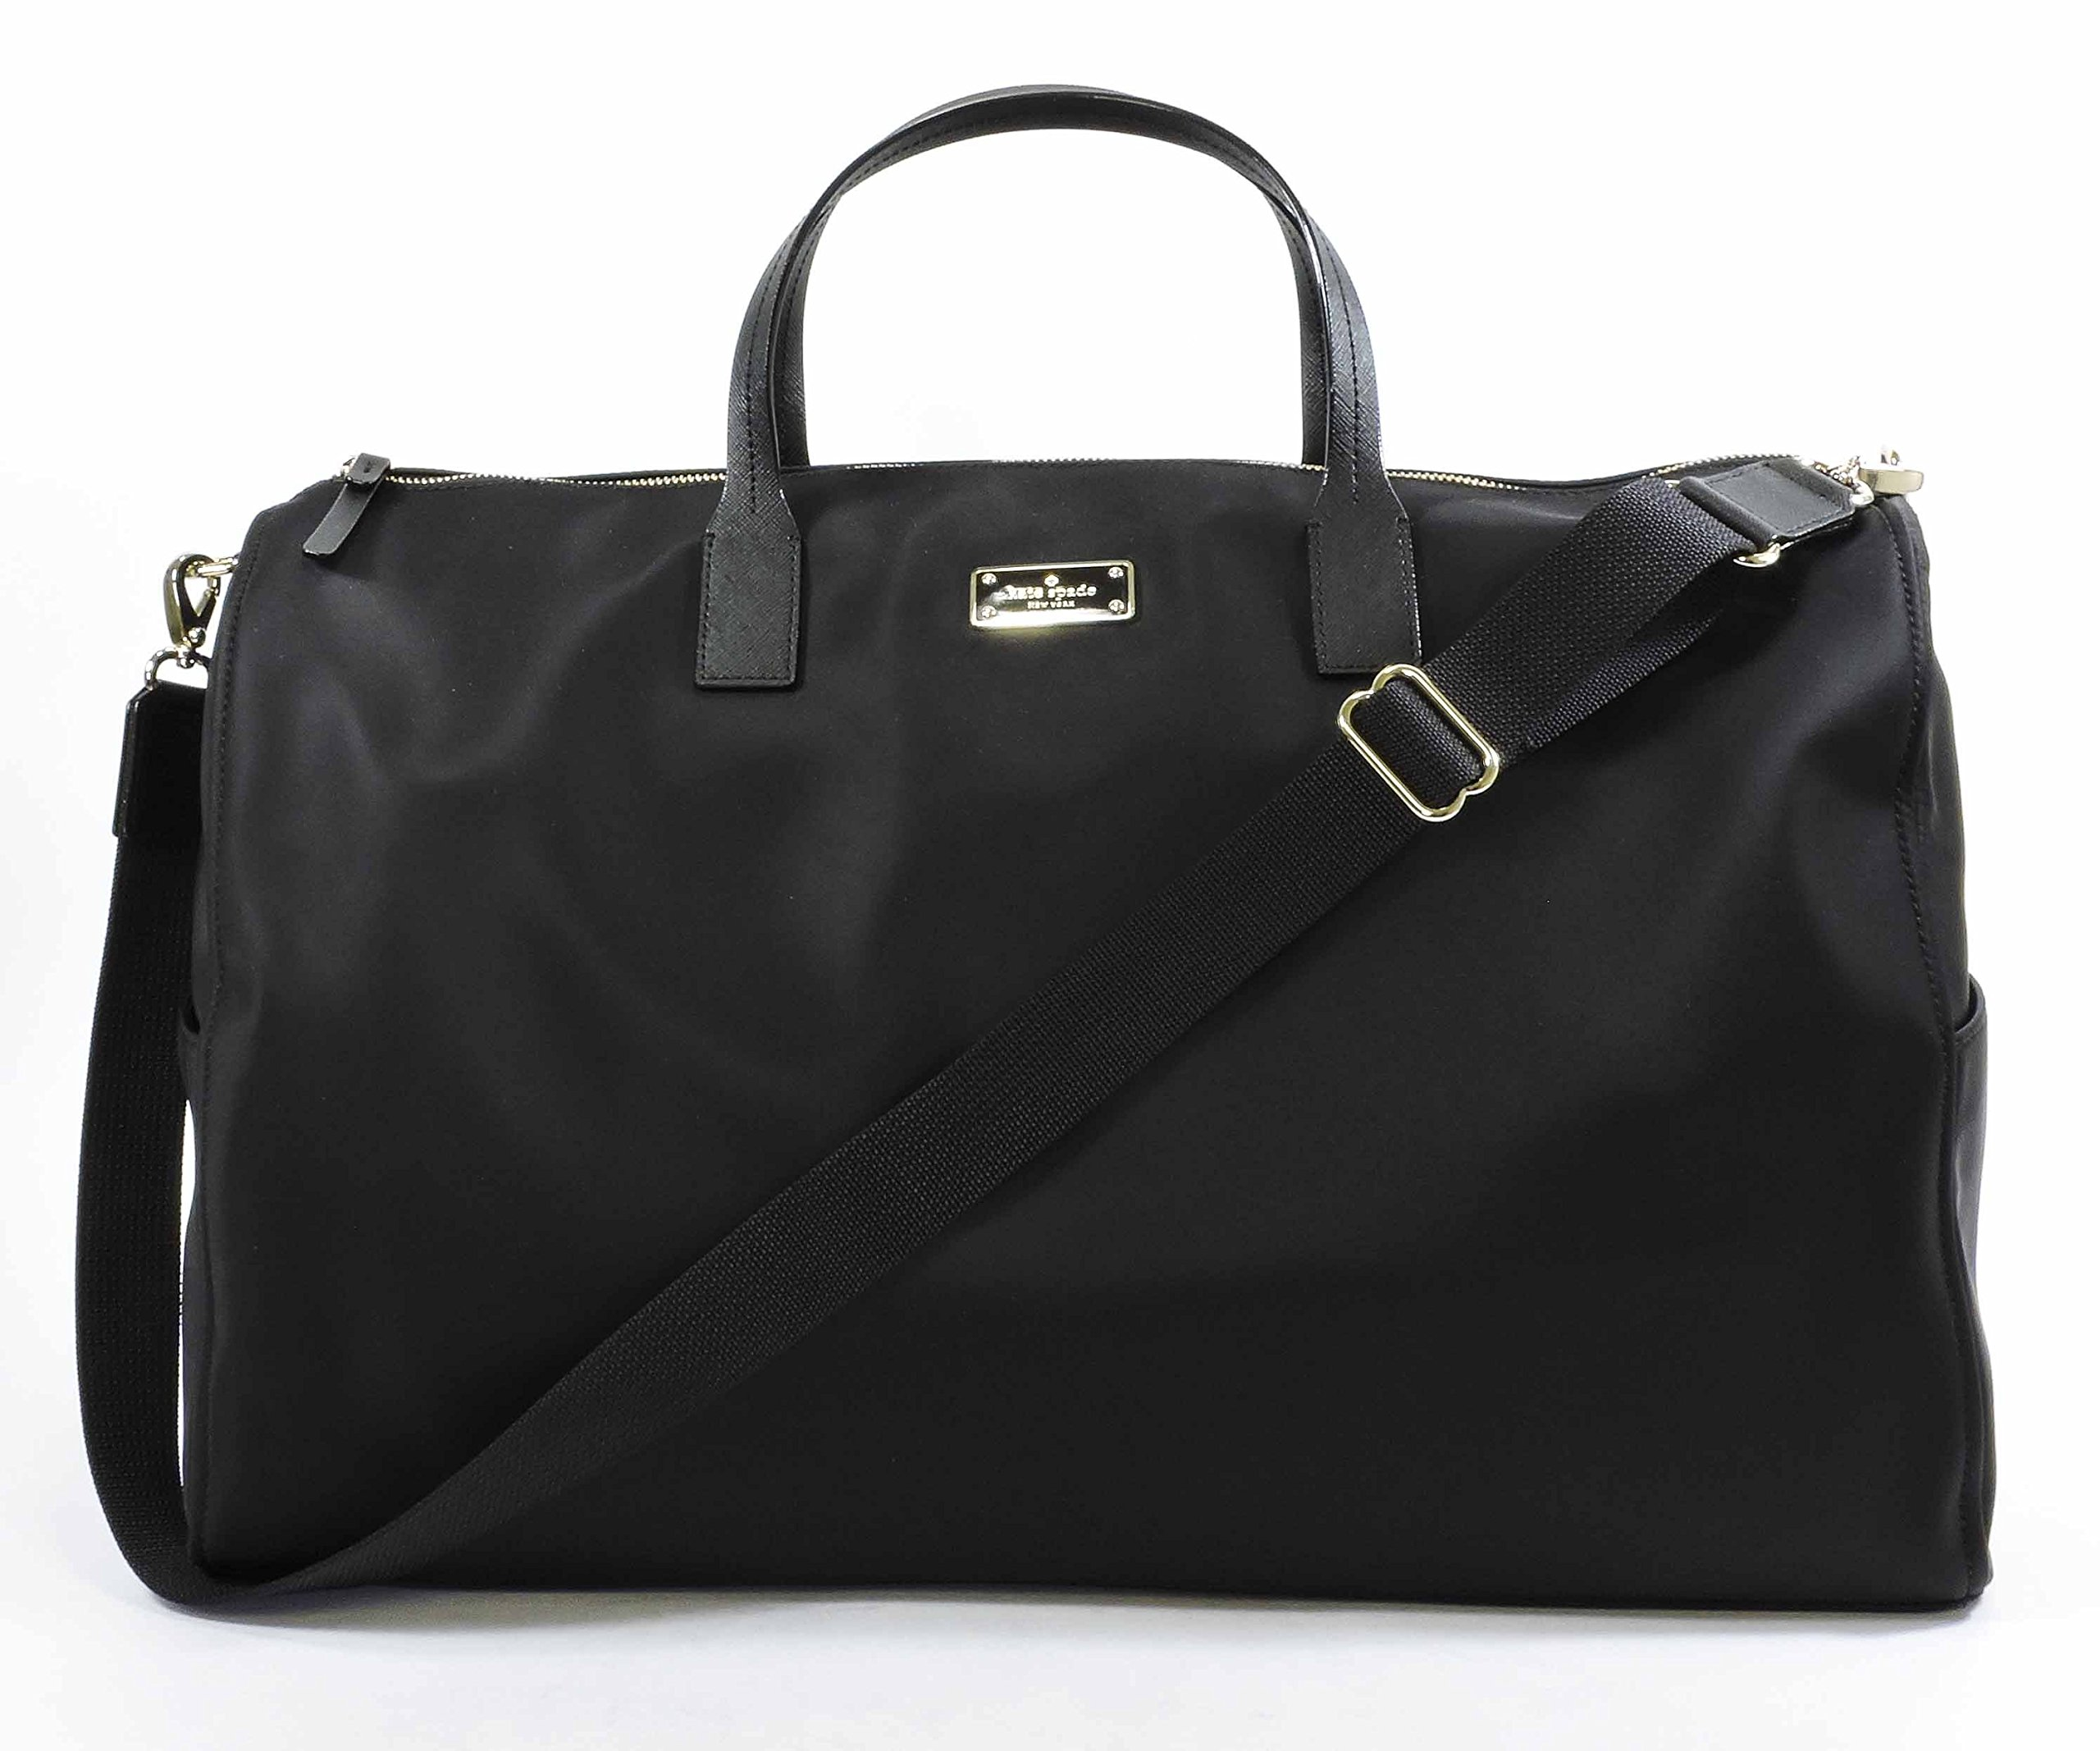 Kate Spade New York Blake Avenue Filipa Travel Duffle Bag,Black…